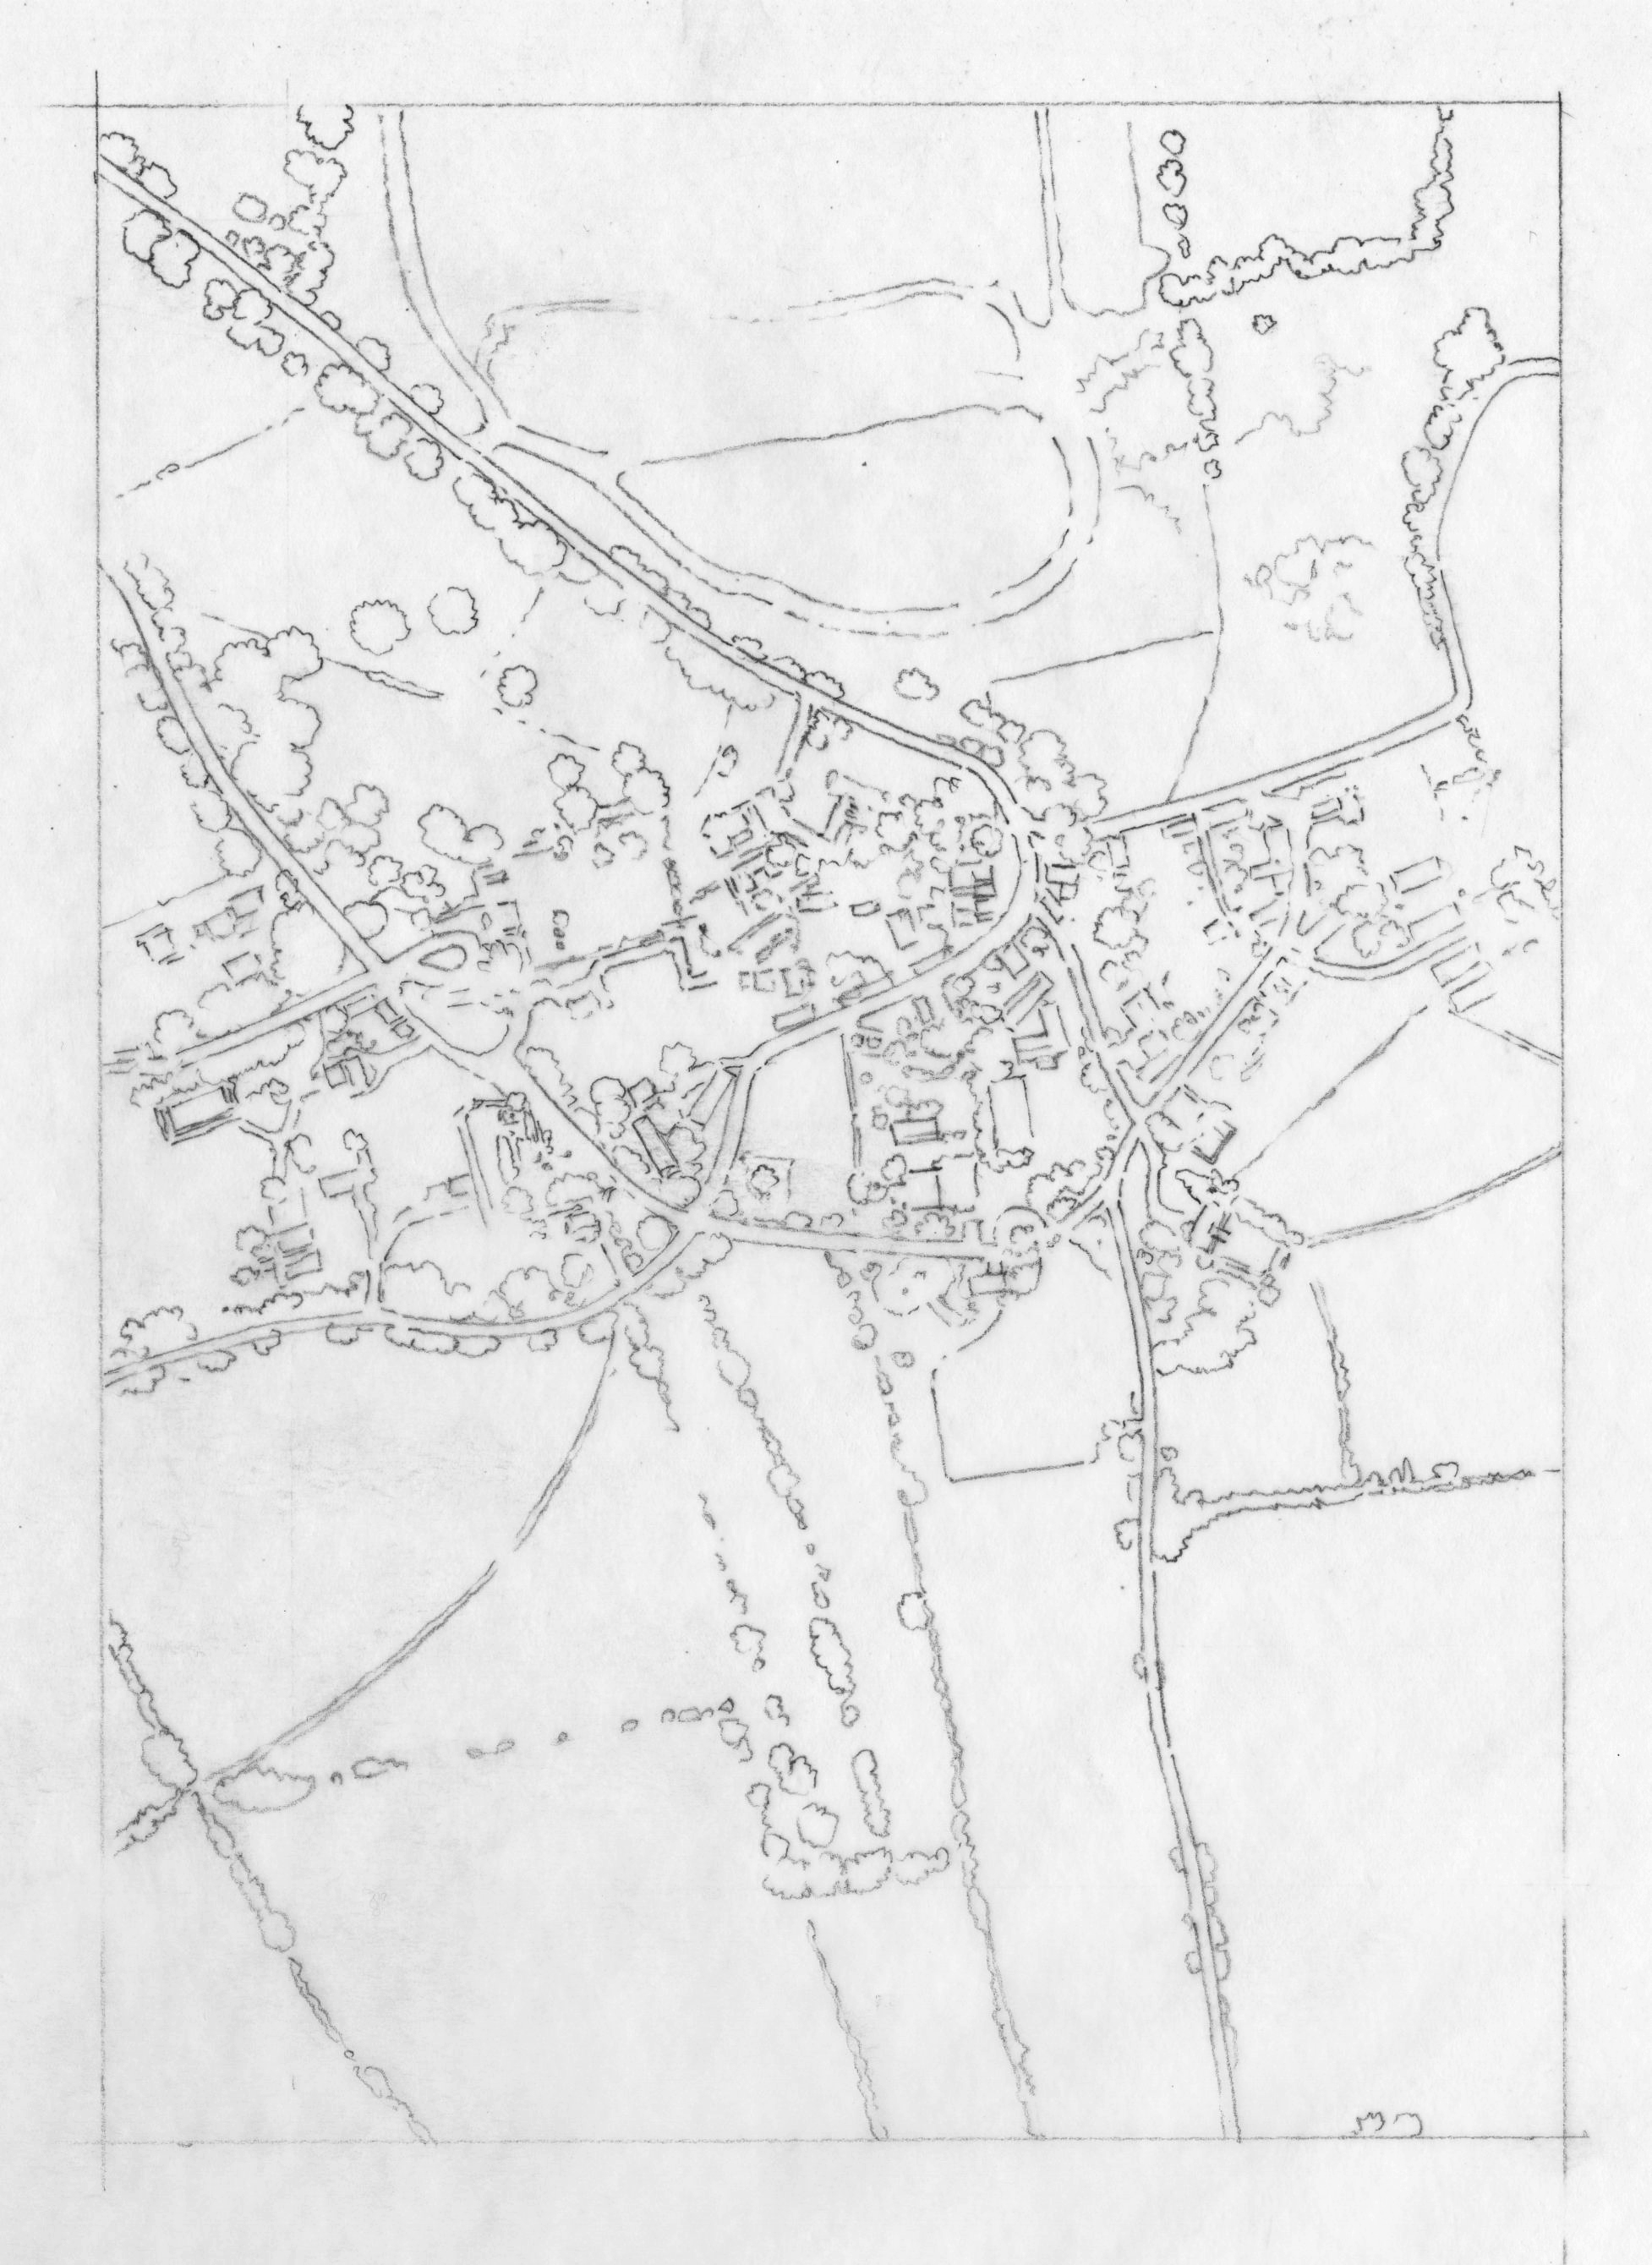 Maugersbury map sketch001.jpg